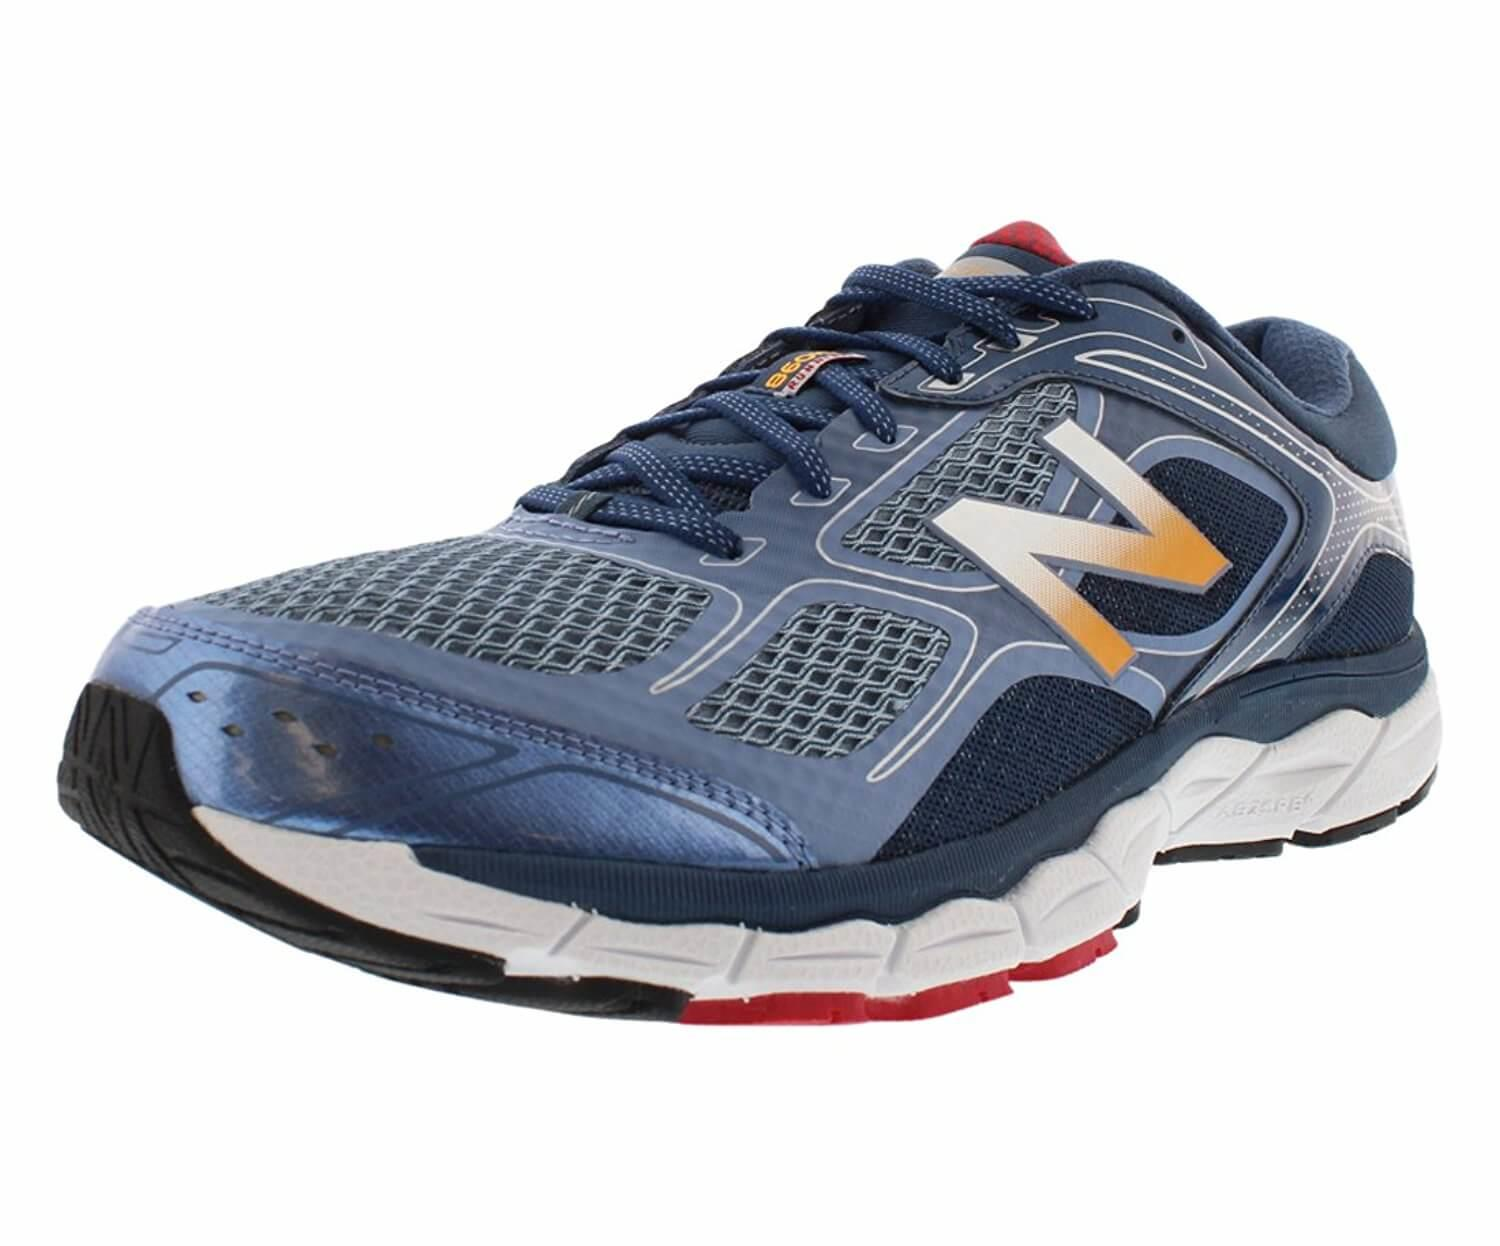 new balance men's 860v6 running shoes